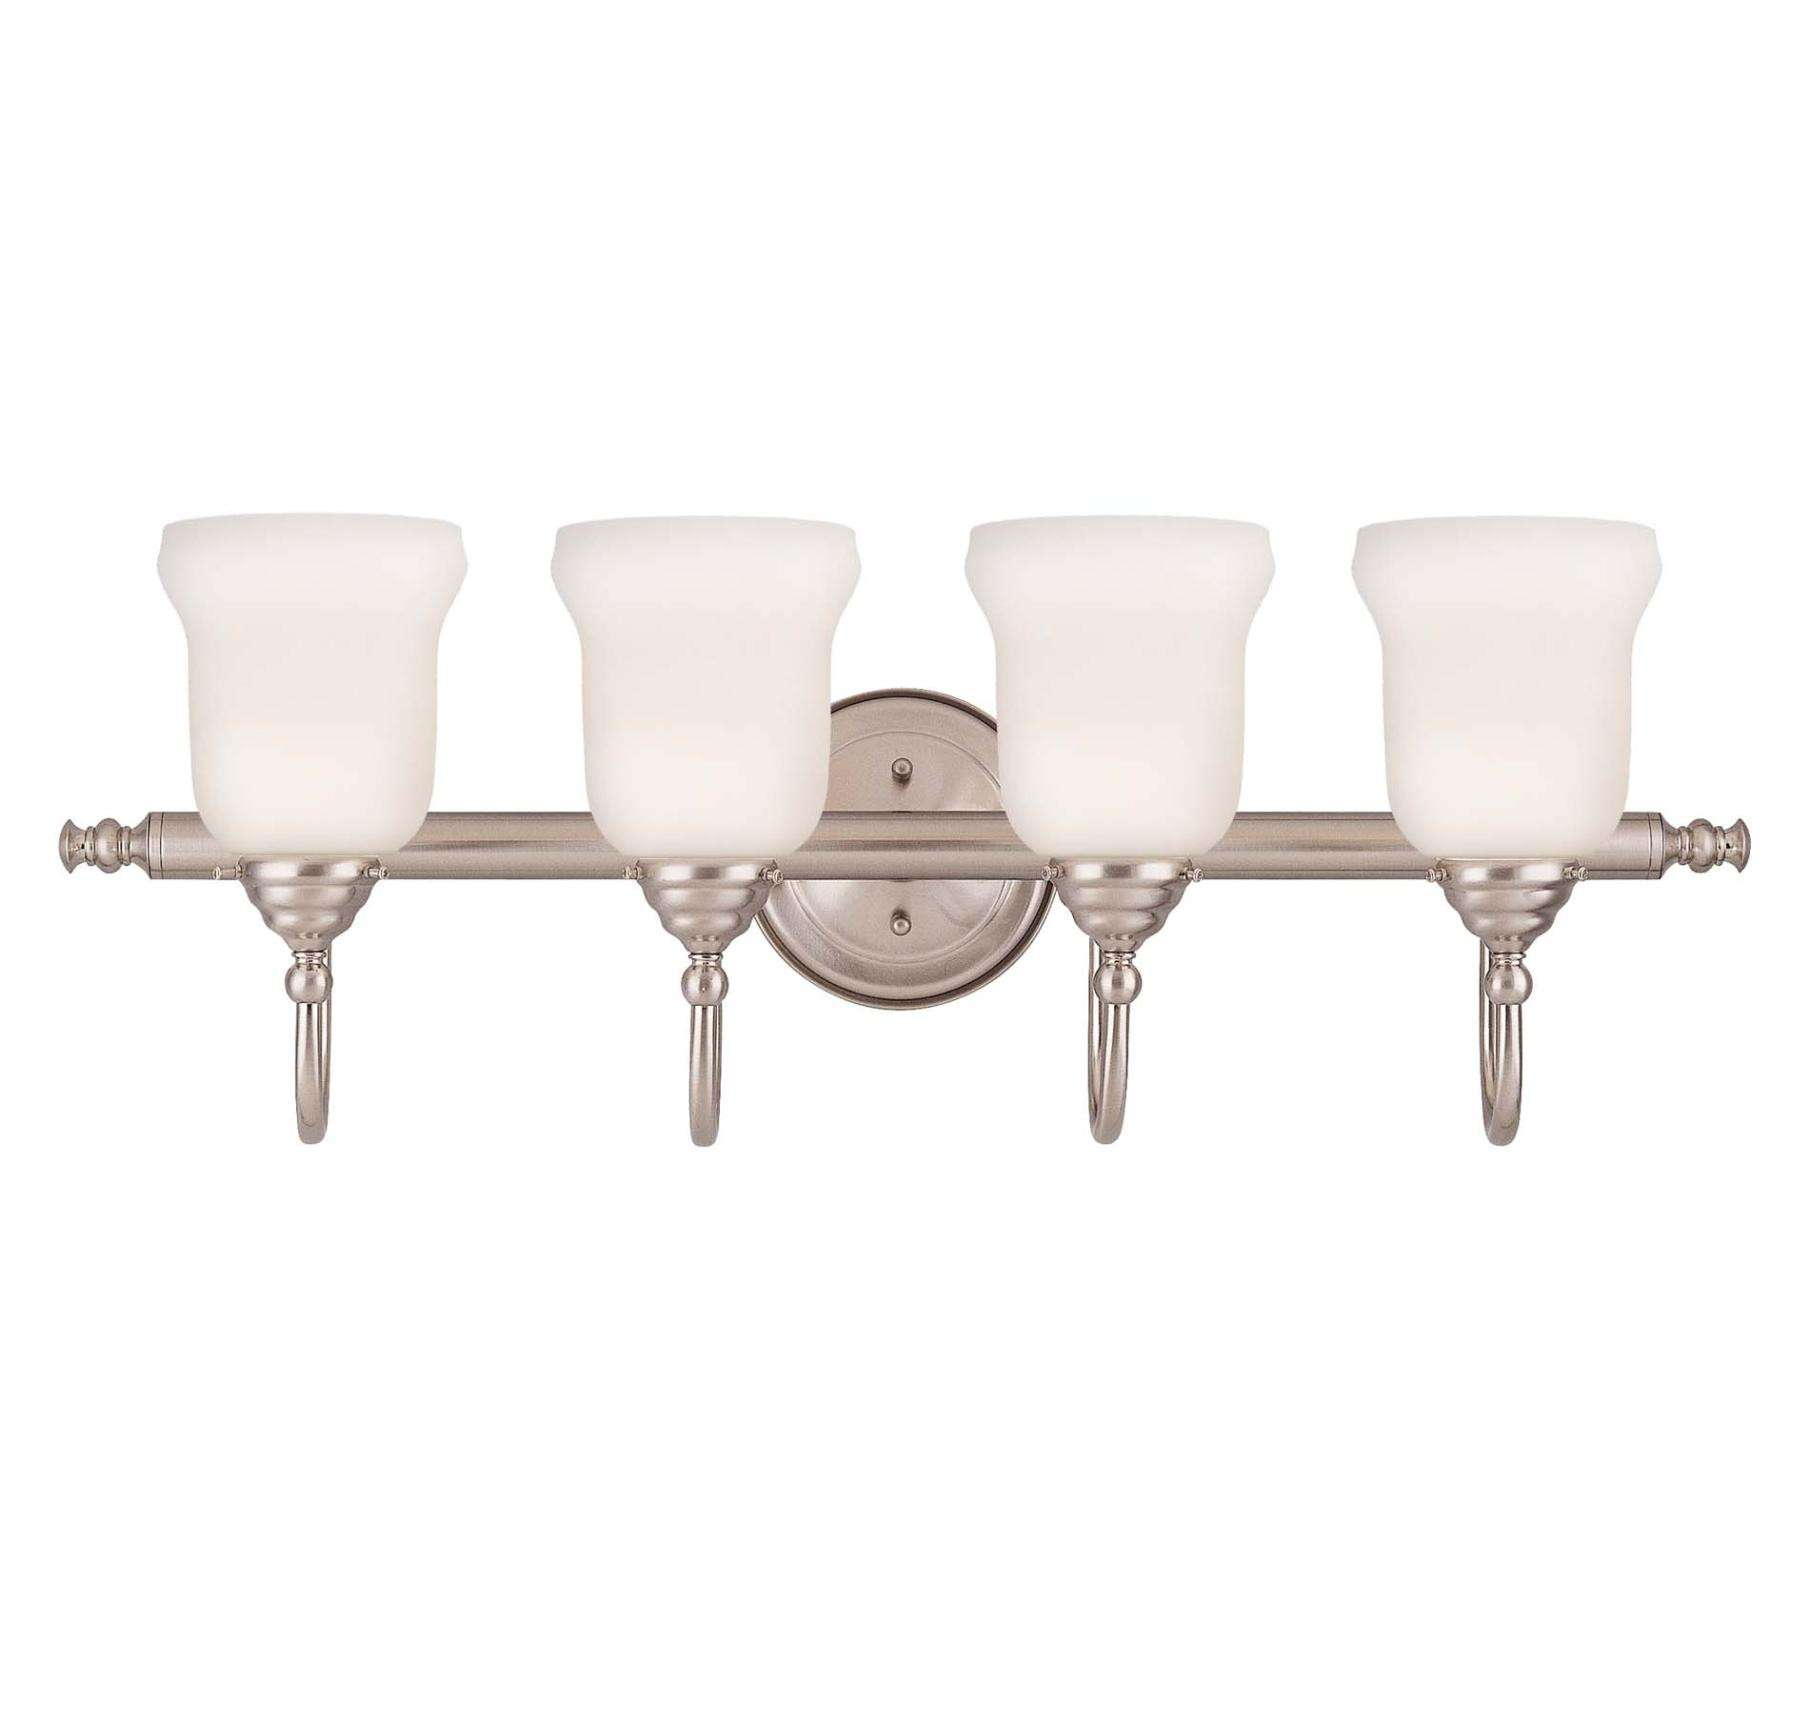 Savoy House 1062-4-SN Brunswick 4 Light Bath Bar in Satin Nickel Finish (glass sold separately)